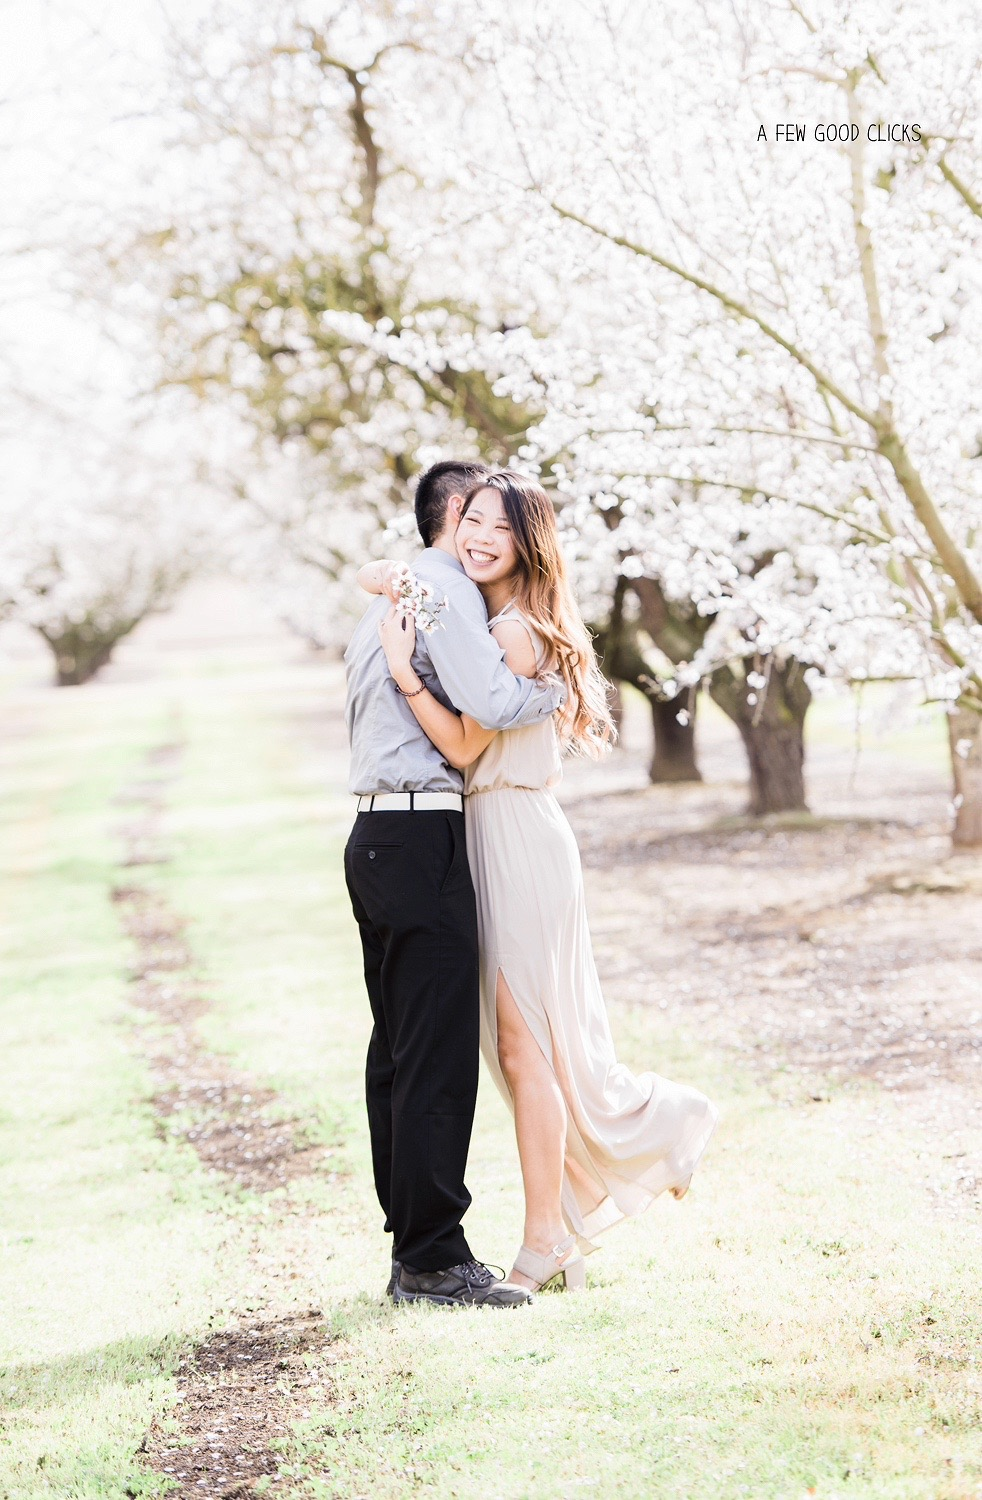 hugging-couples-under-spring-almond-blossom-pose